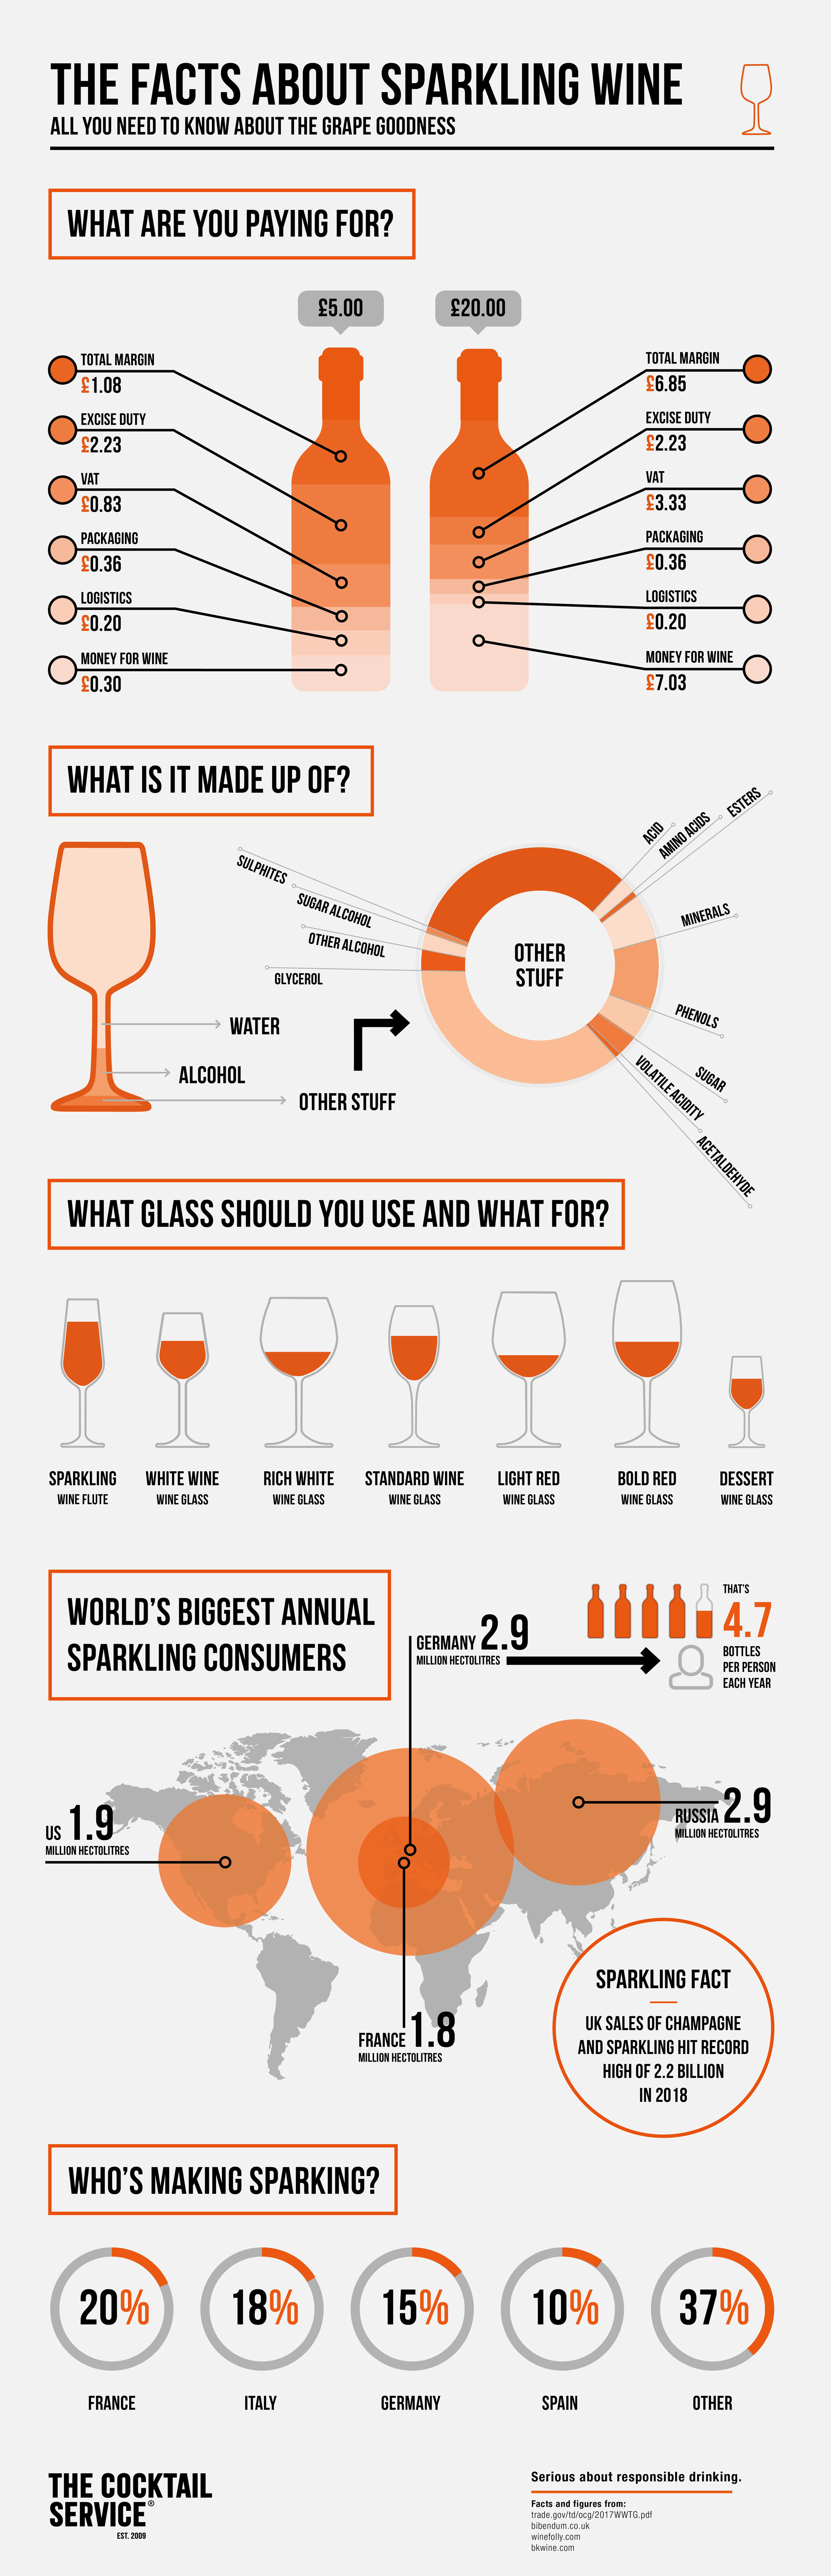 Facts-about-sparkling-wine-infographic.jpg